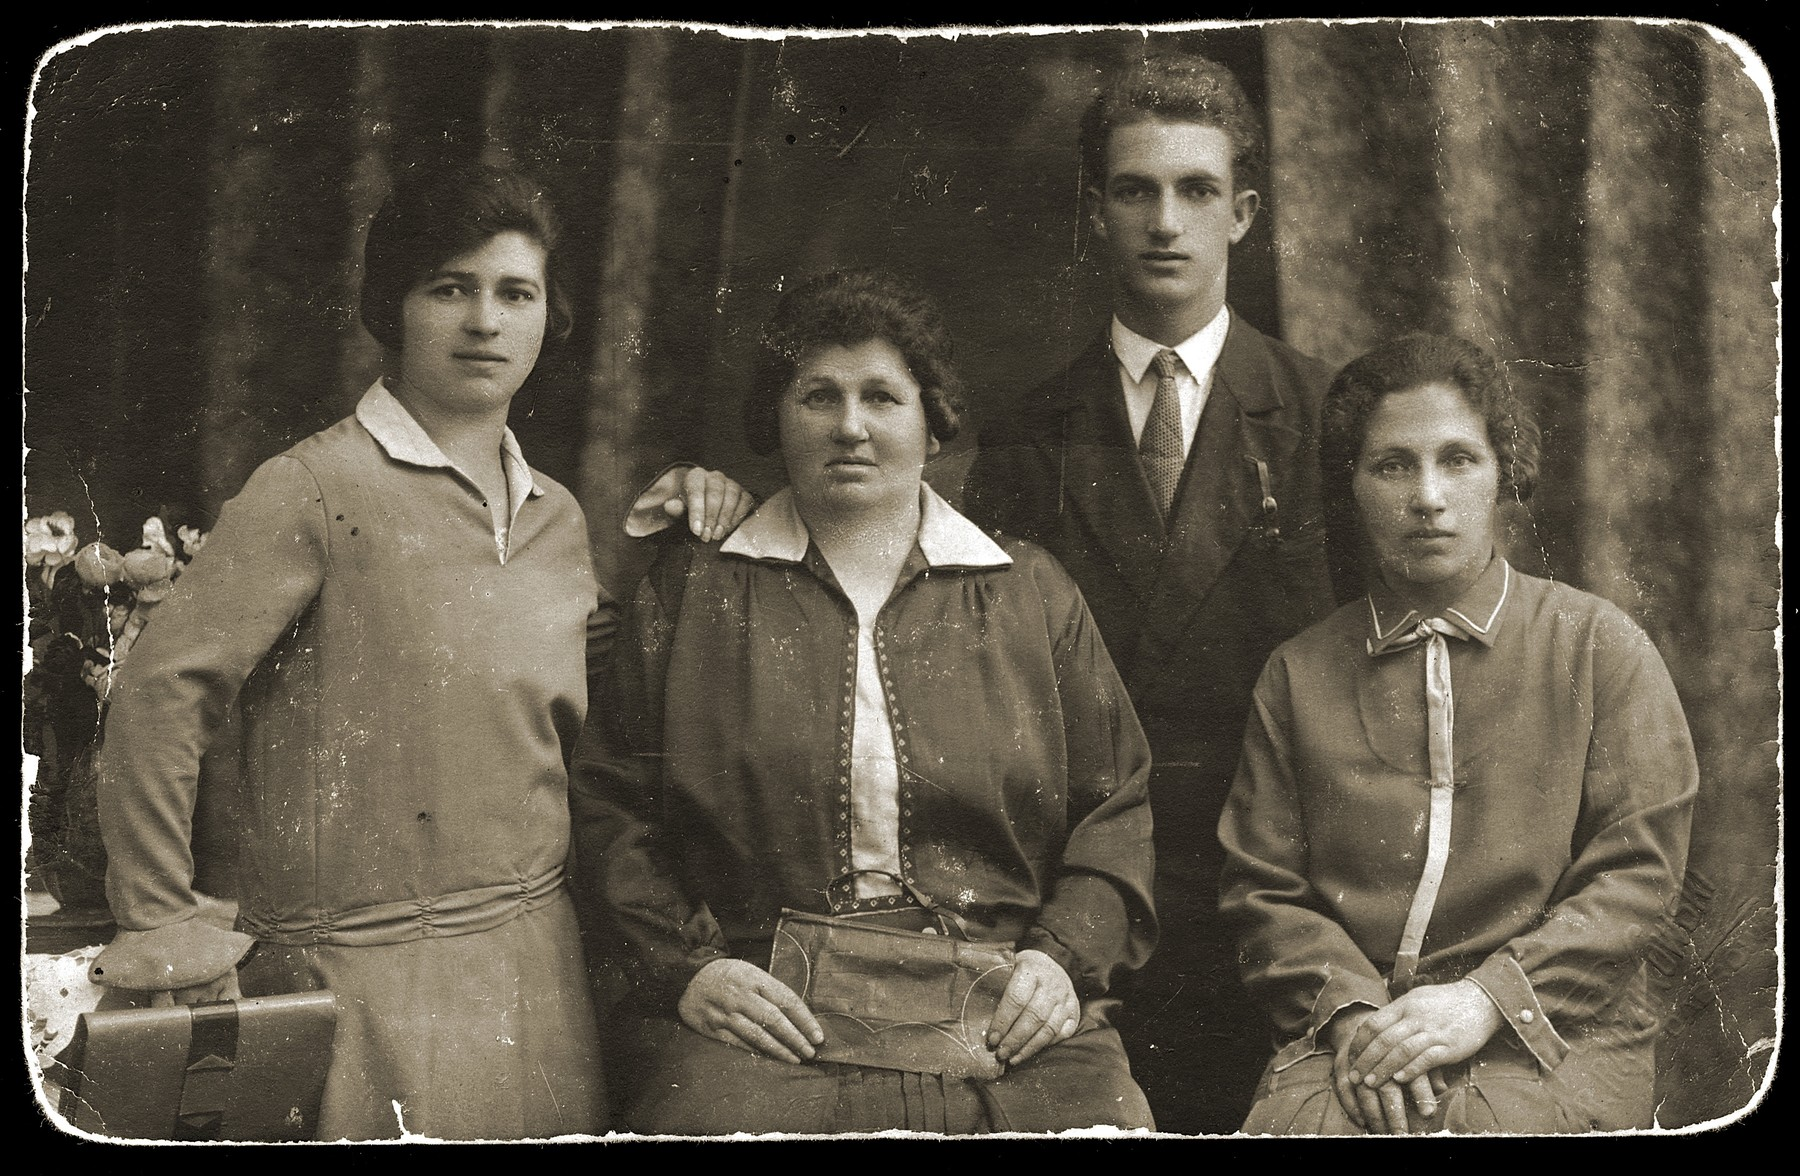 Portrait of the Gruenzeiger family.  From left to right are Pola, Lea, Zendel and Rywka.